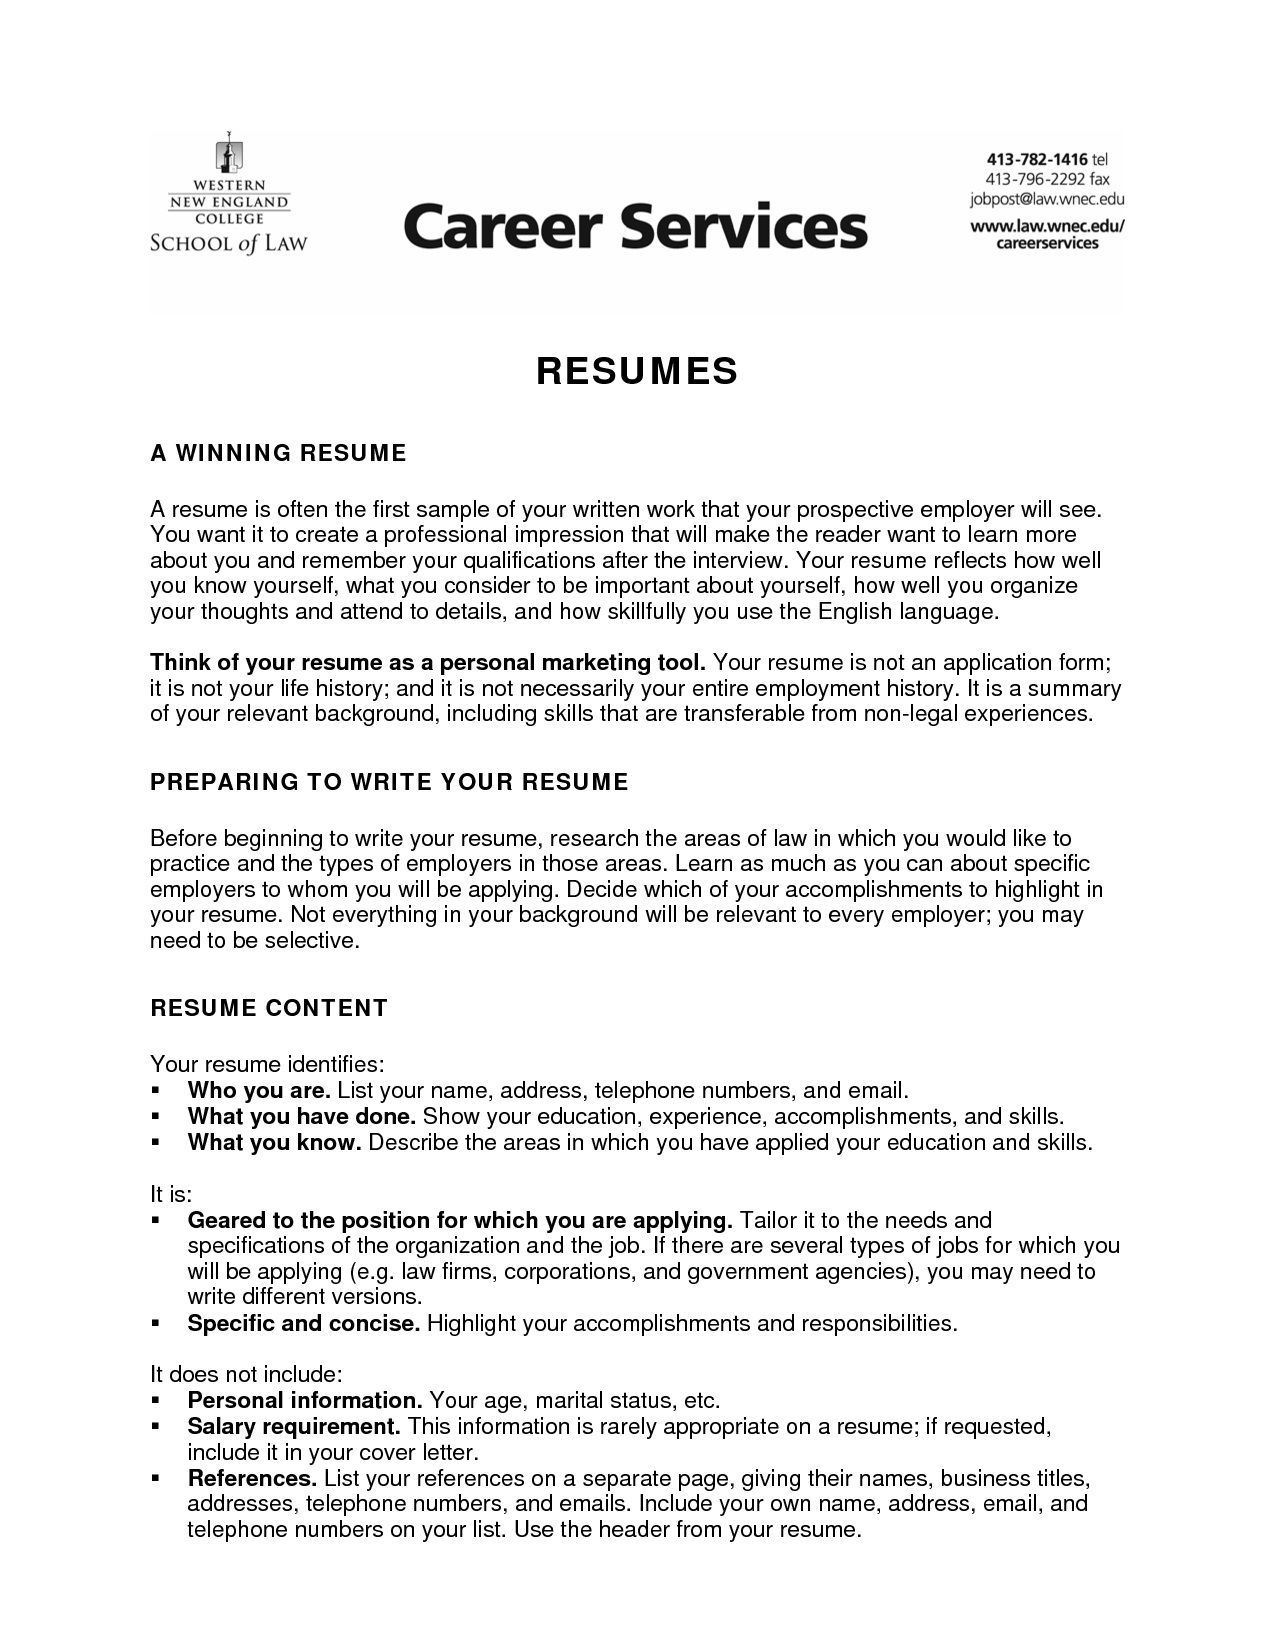 Sample Resume Objective For College Student Latest Format Job